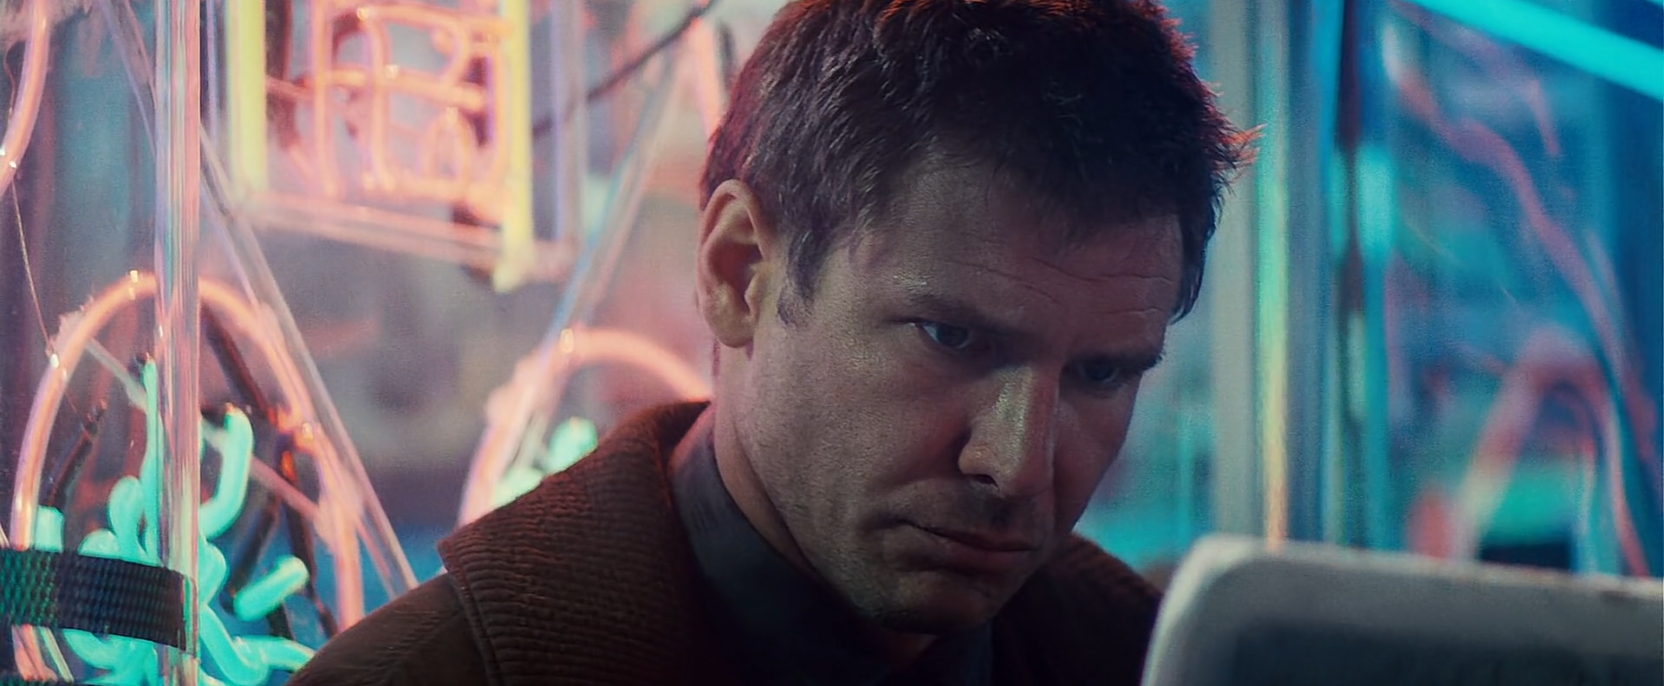 Humans and Replicants in Ridley Scott's Blade Runner